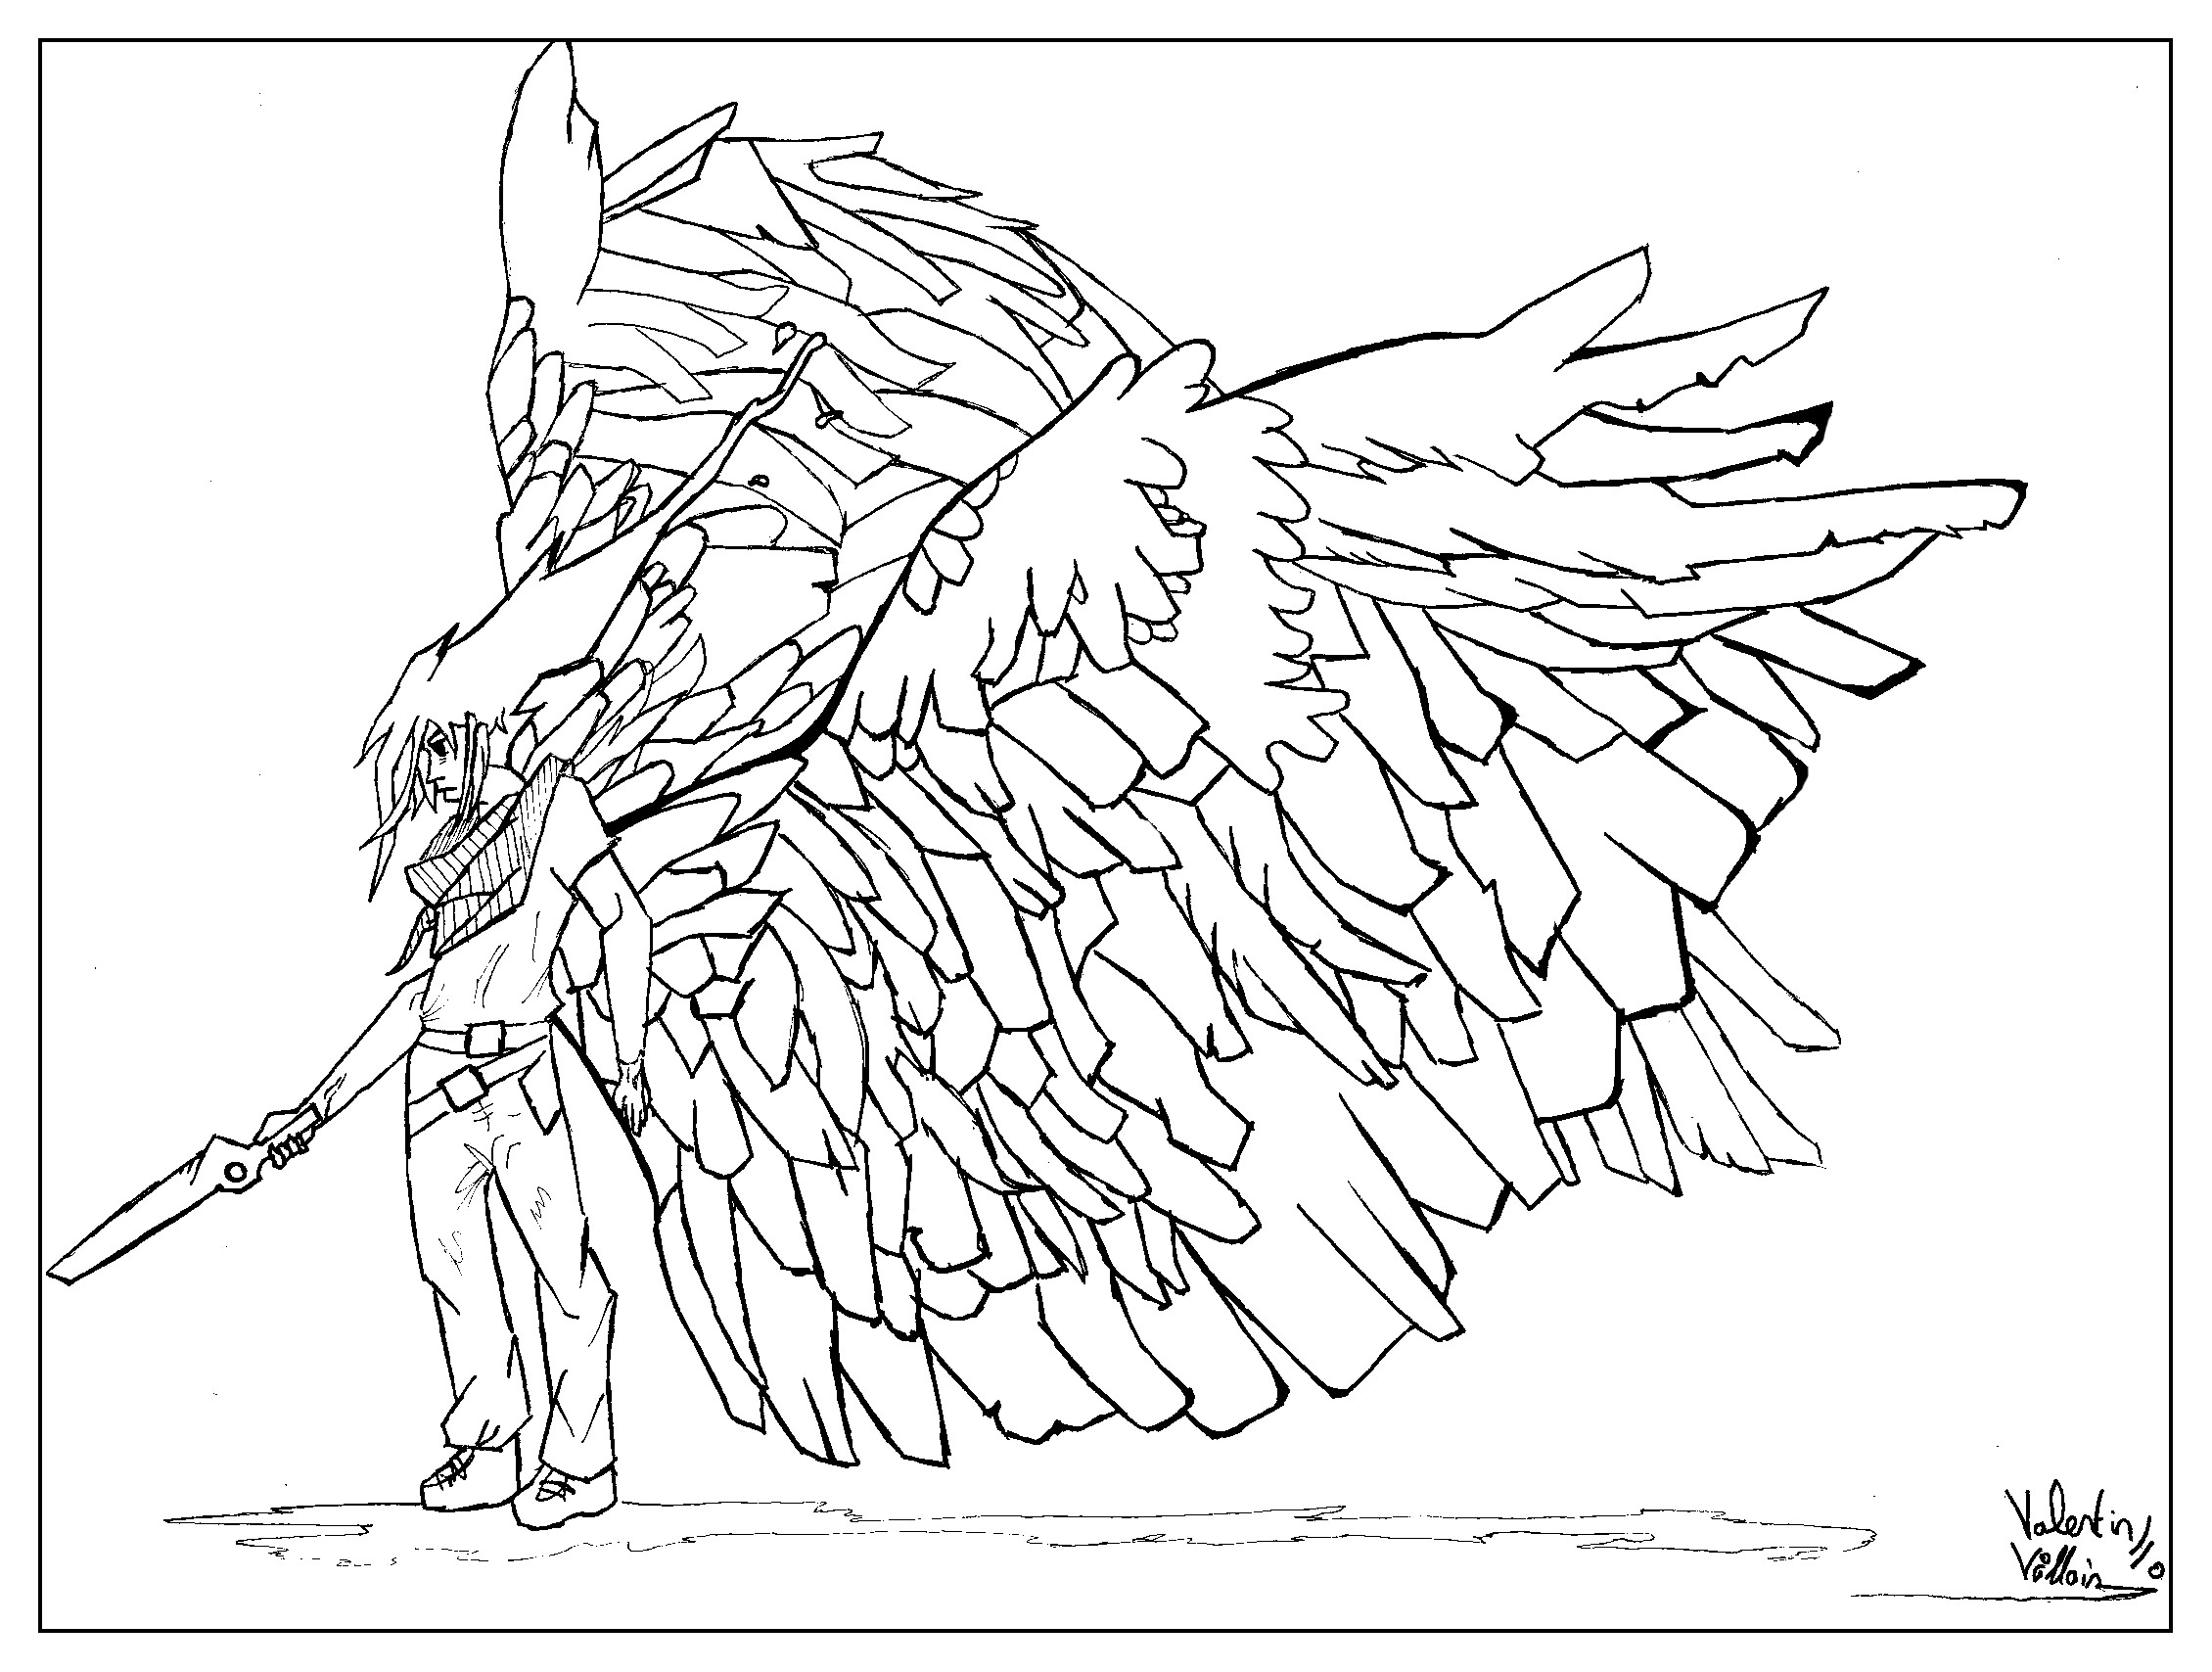 Coloring pages of a winged man inspired by icar